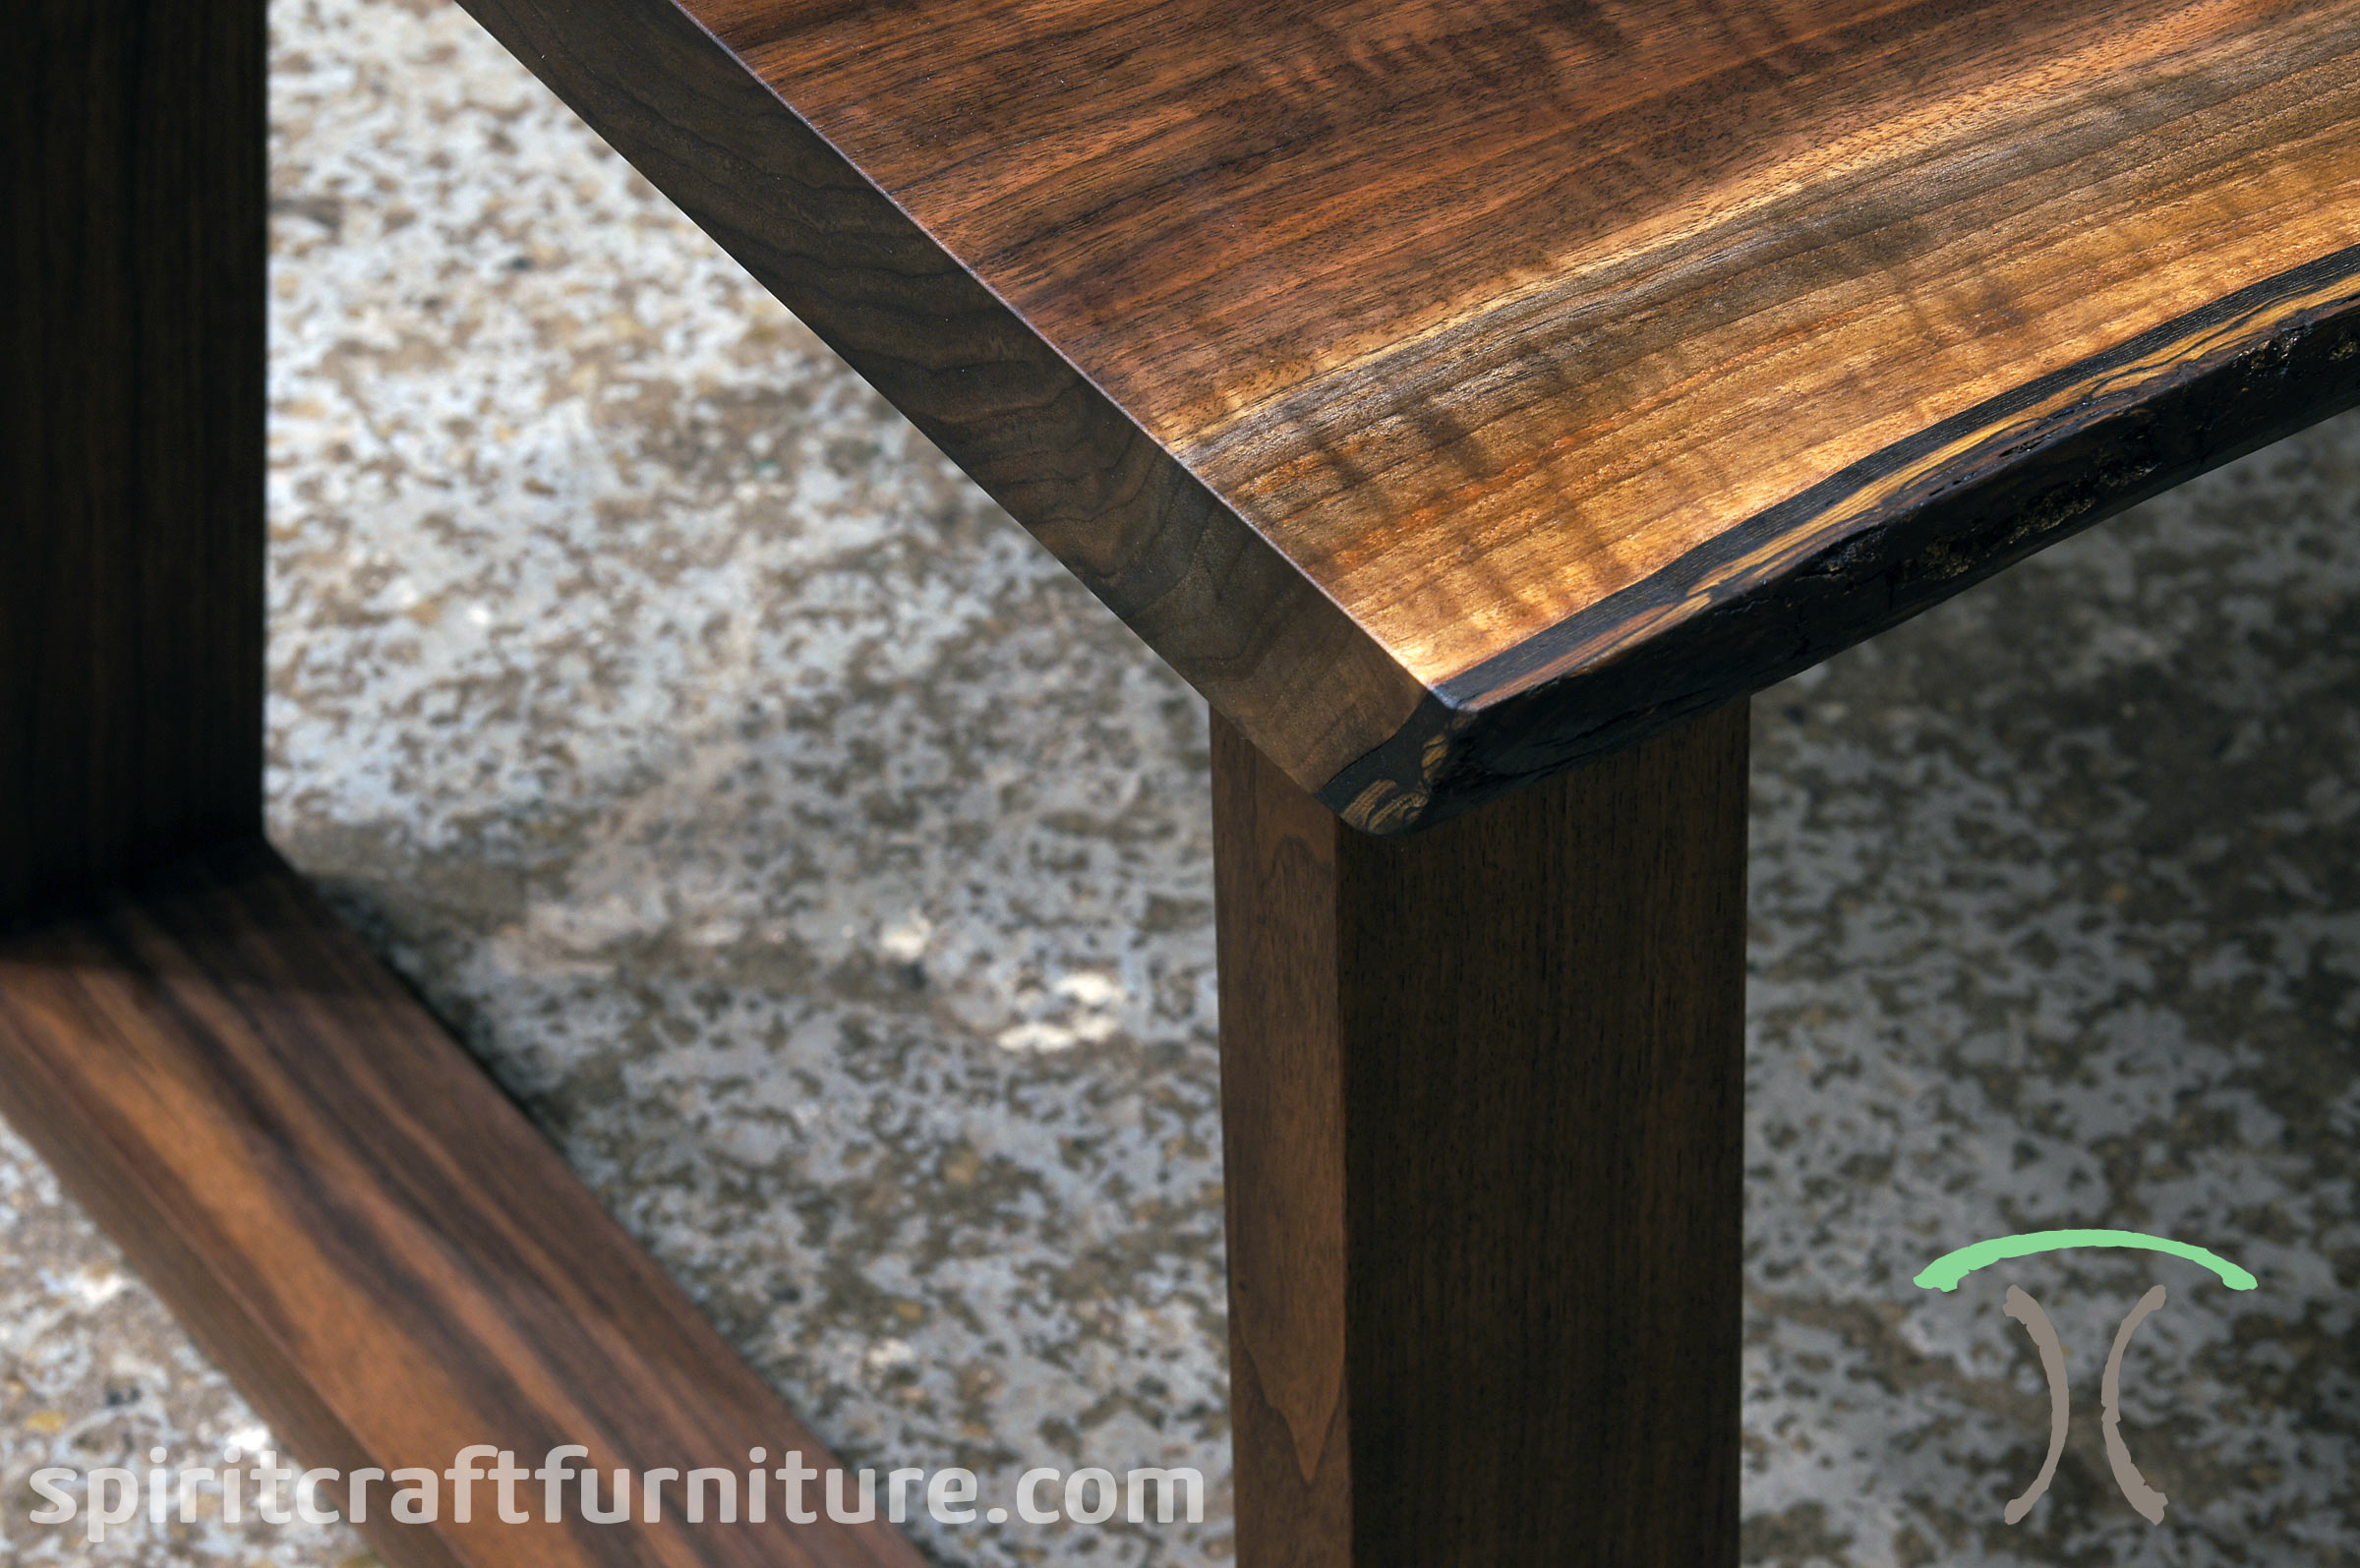 Kiln Dried Black Walnut live edge dining table with our solid hardwood trapezoid legs at Chicago area Living Edge Furniture Company, East Dundee, IL.